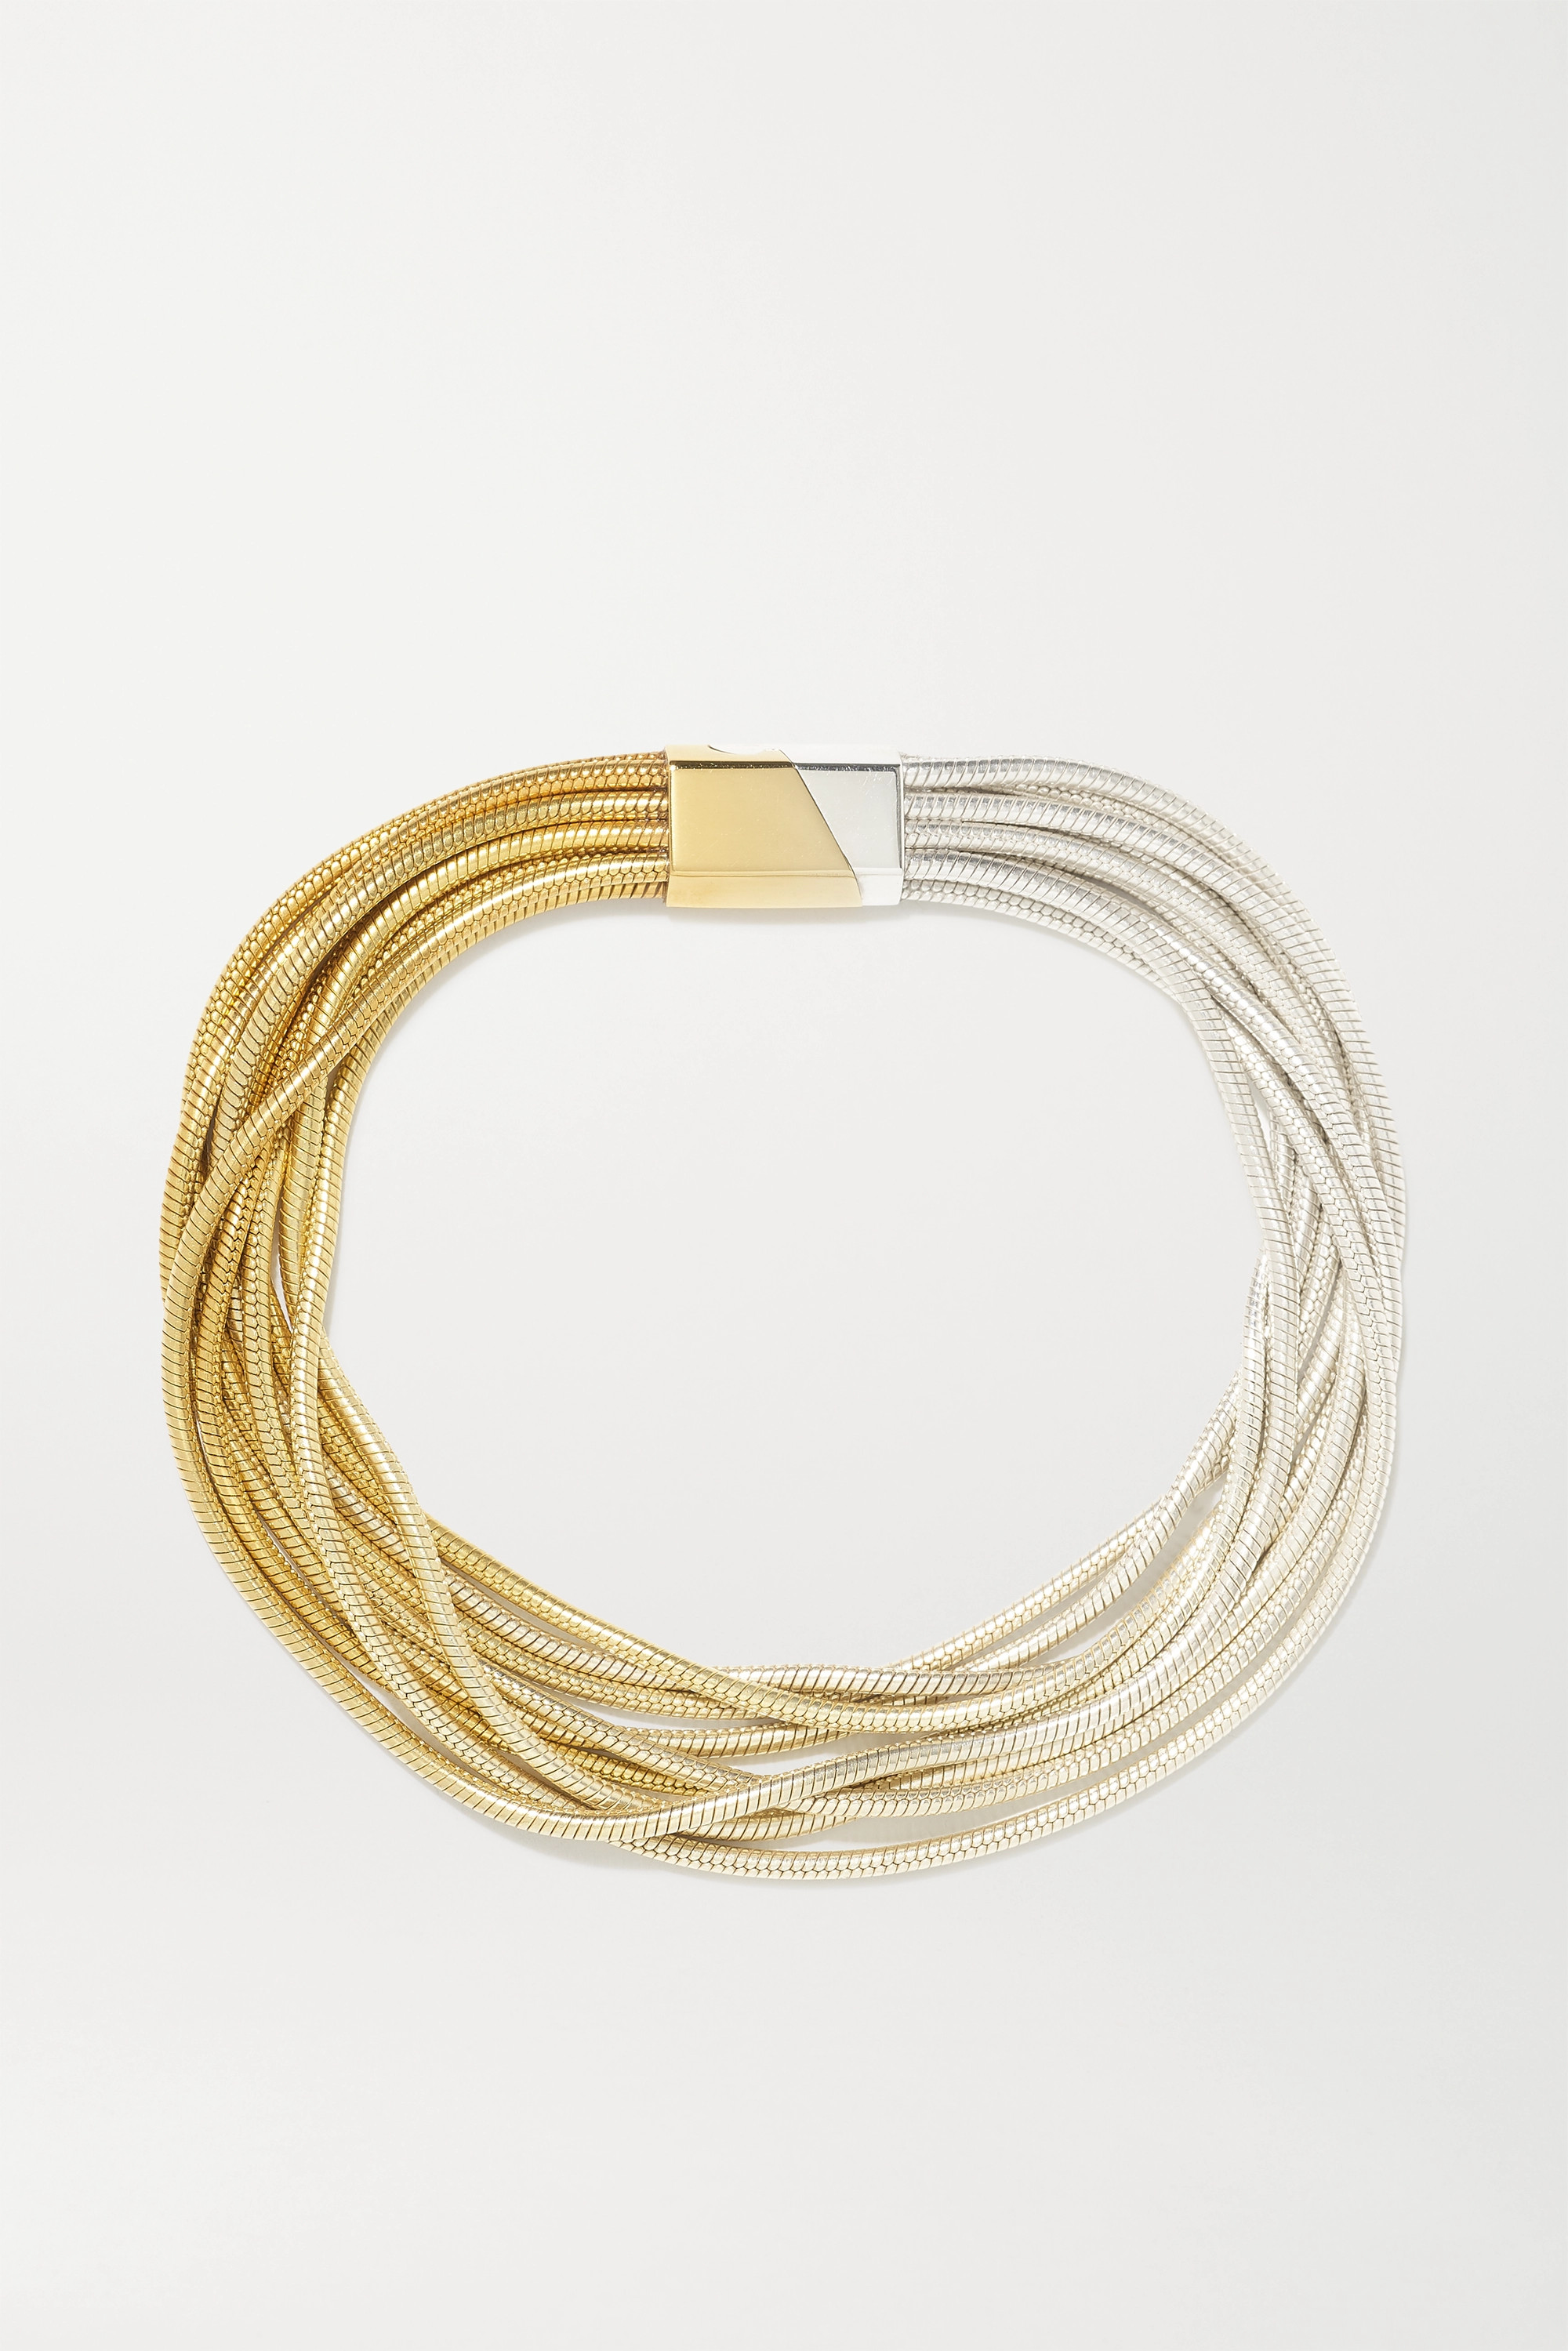 SARAH & SEBASTIAN Feeler gold vermeil and silver bracelet